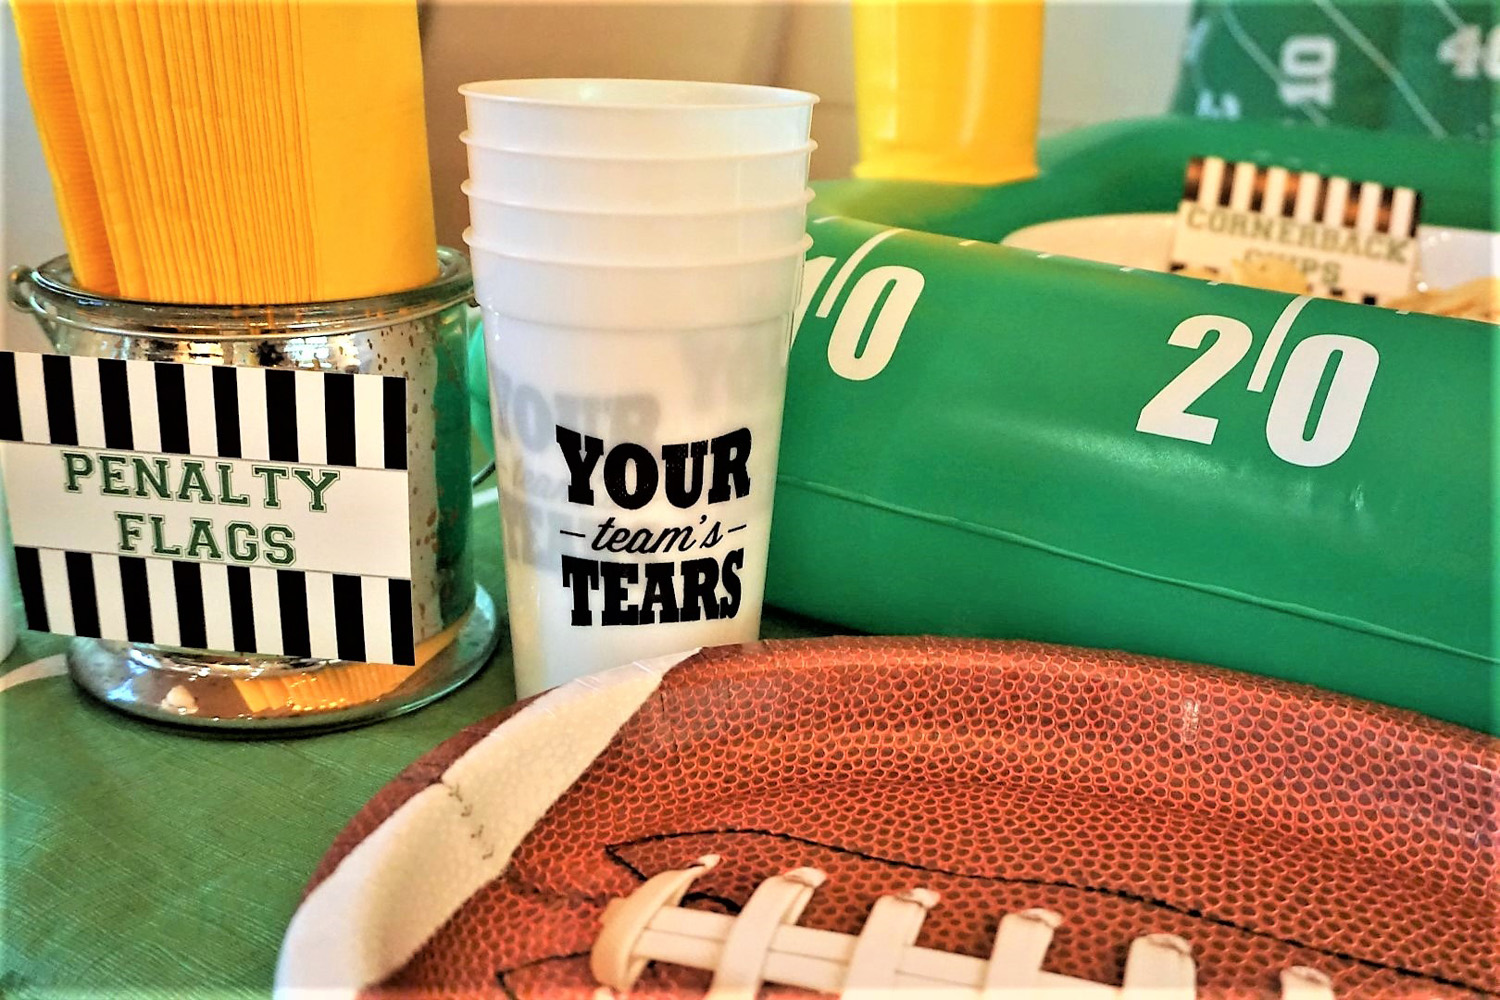 Football plates, yellow penalty flag napkins, and plastic beer cups